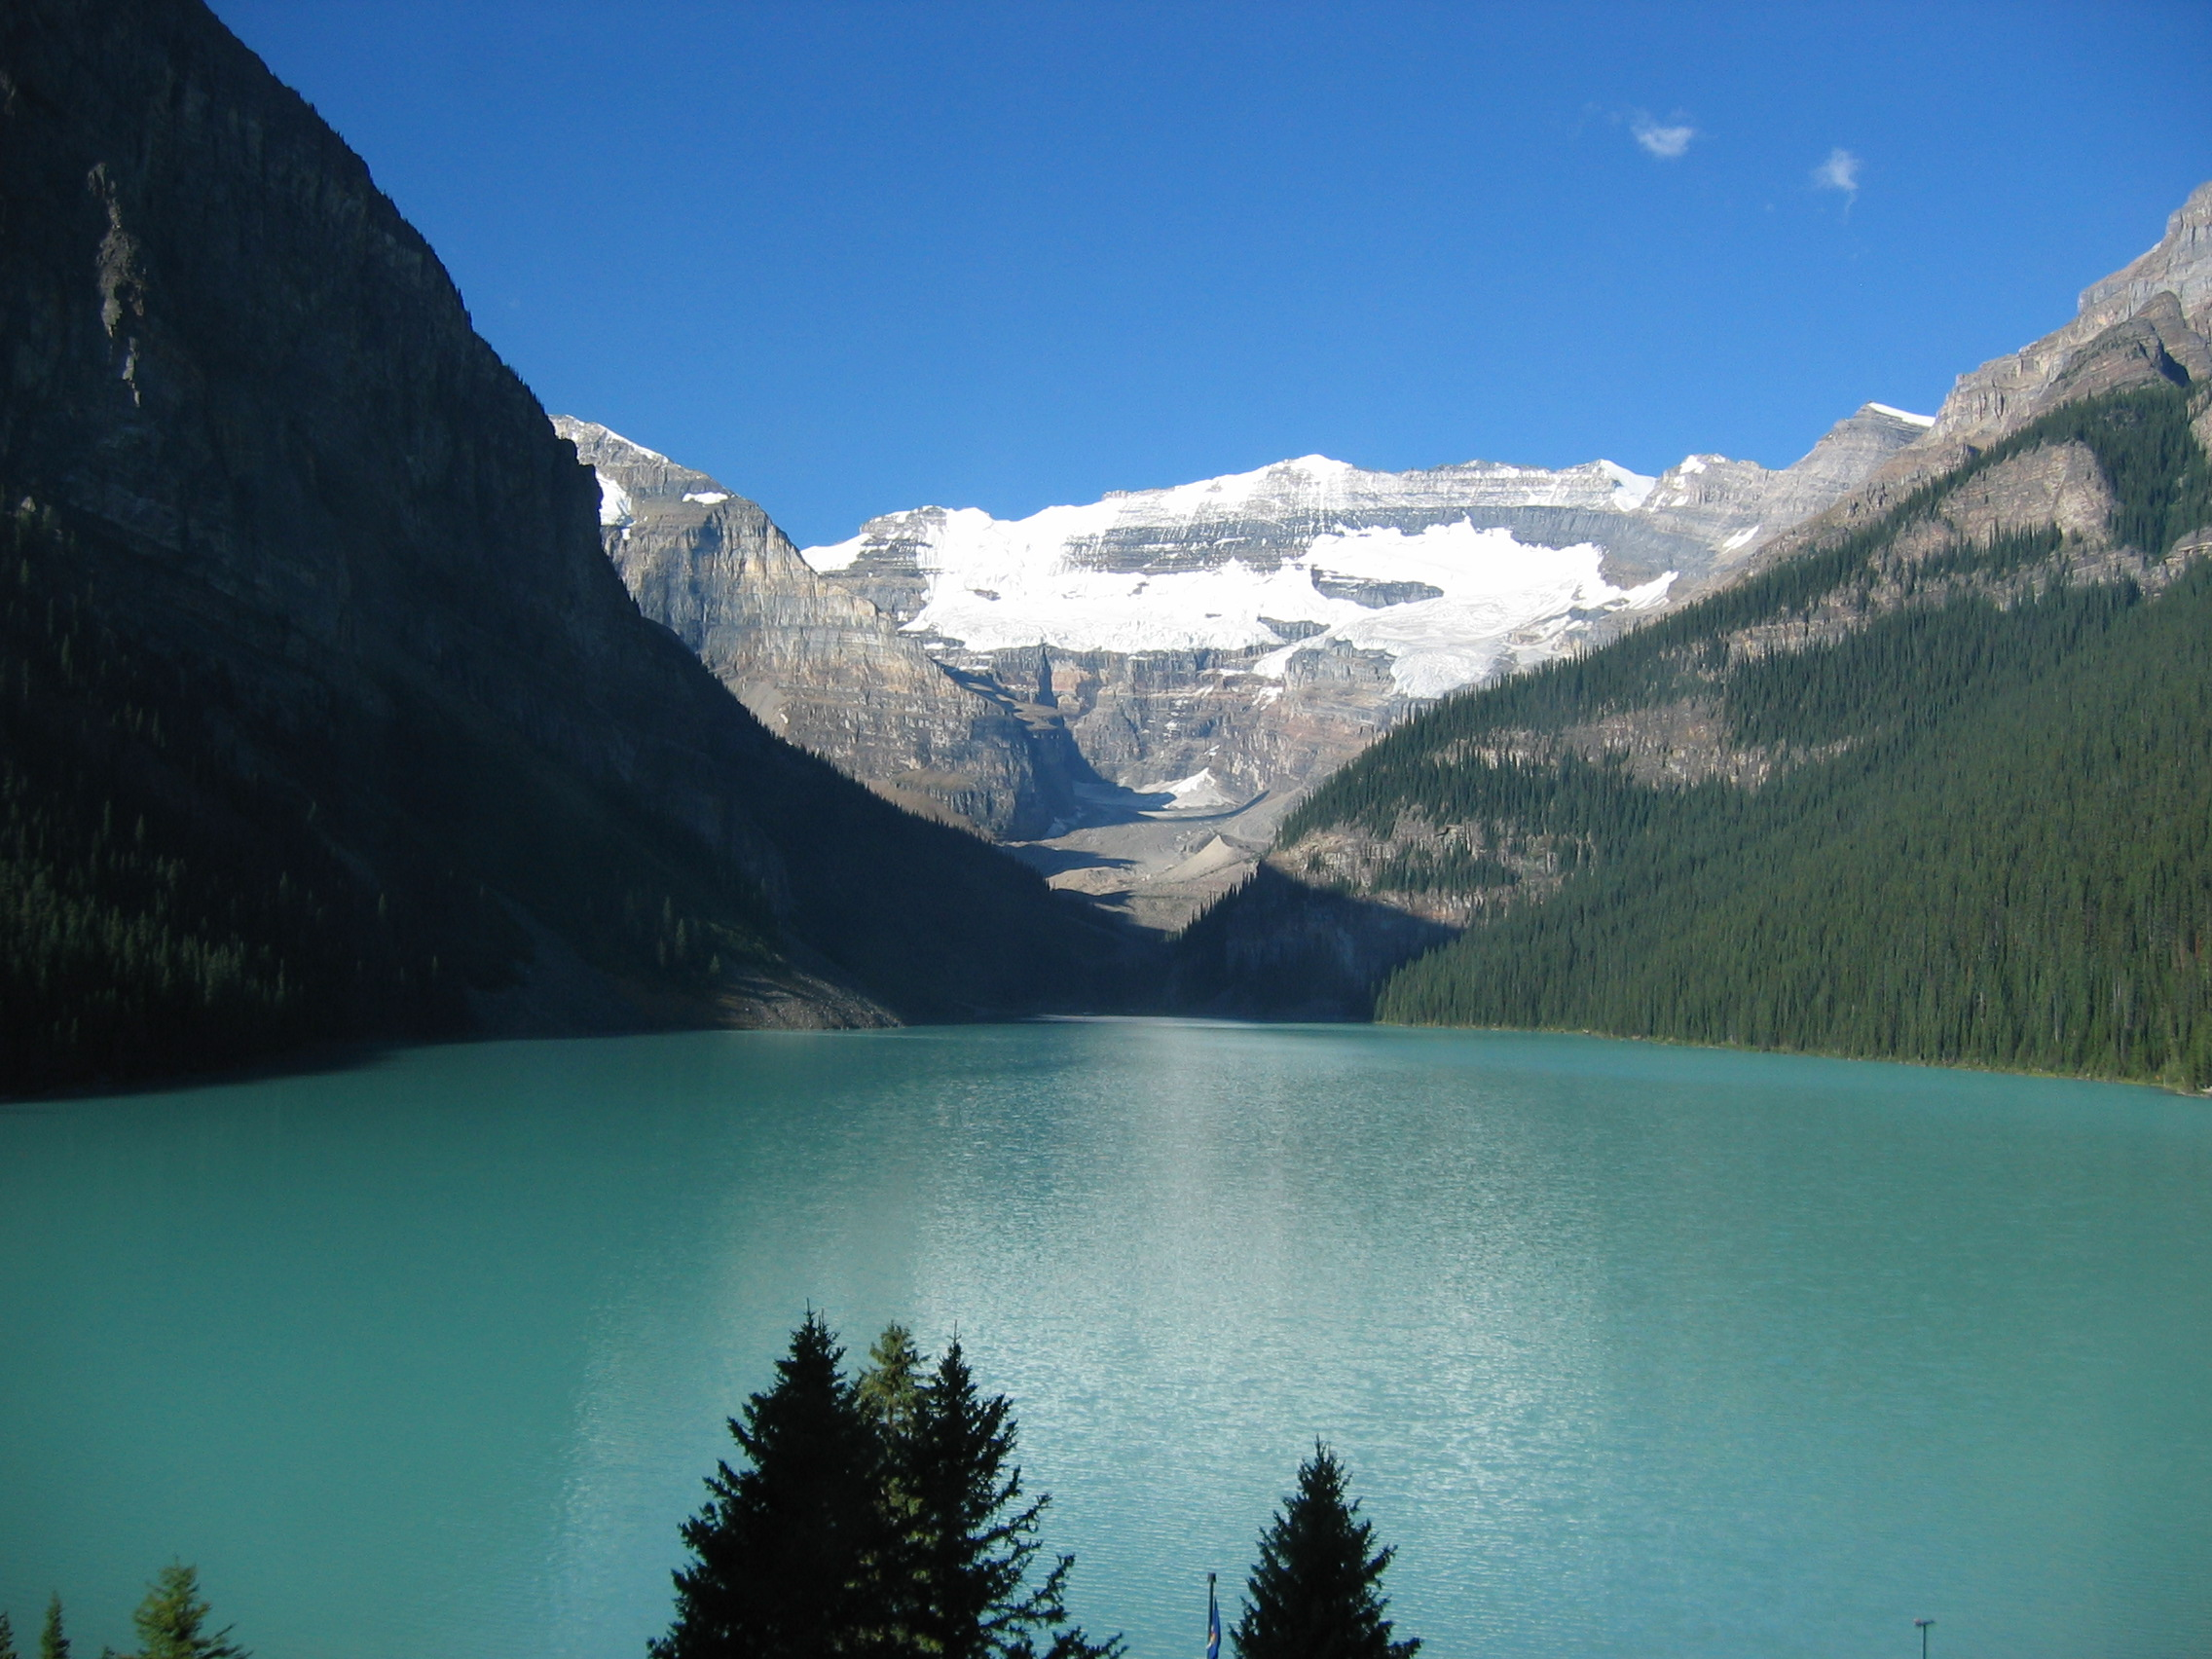 This is literally the view from our hotel window of Lake Louise, with Victoria Glacier in the distance.